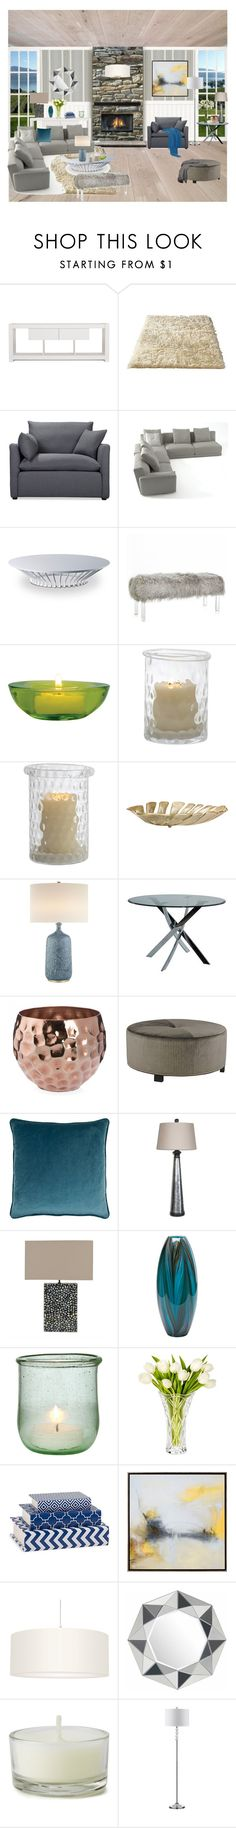 """Untitled #419"" by salomepshavlishvili-1 ❤ liked on Polyvore featuring TemaHome, Volo Design, Modloft, Cultural Intrigue, AERIN, Powell Furniture, Sherry Kline, Uttermost, Safavieh and Marquis by Waterford"